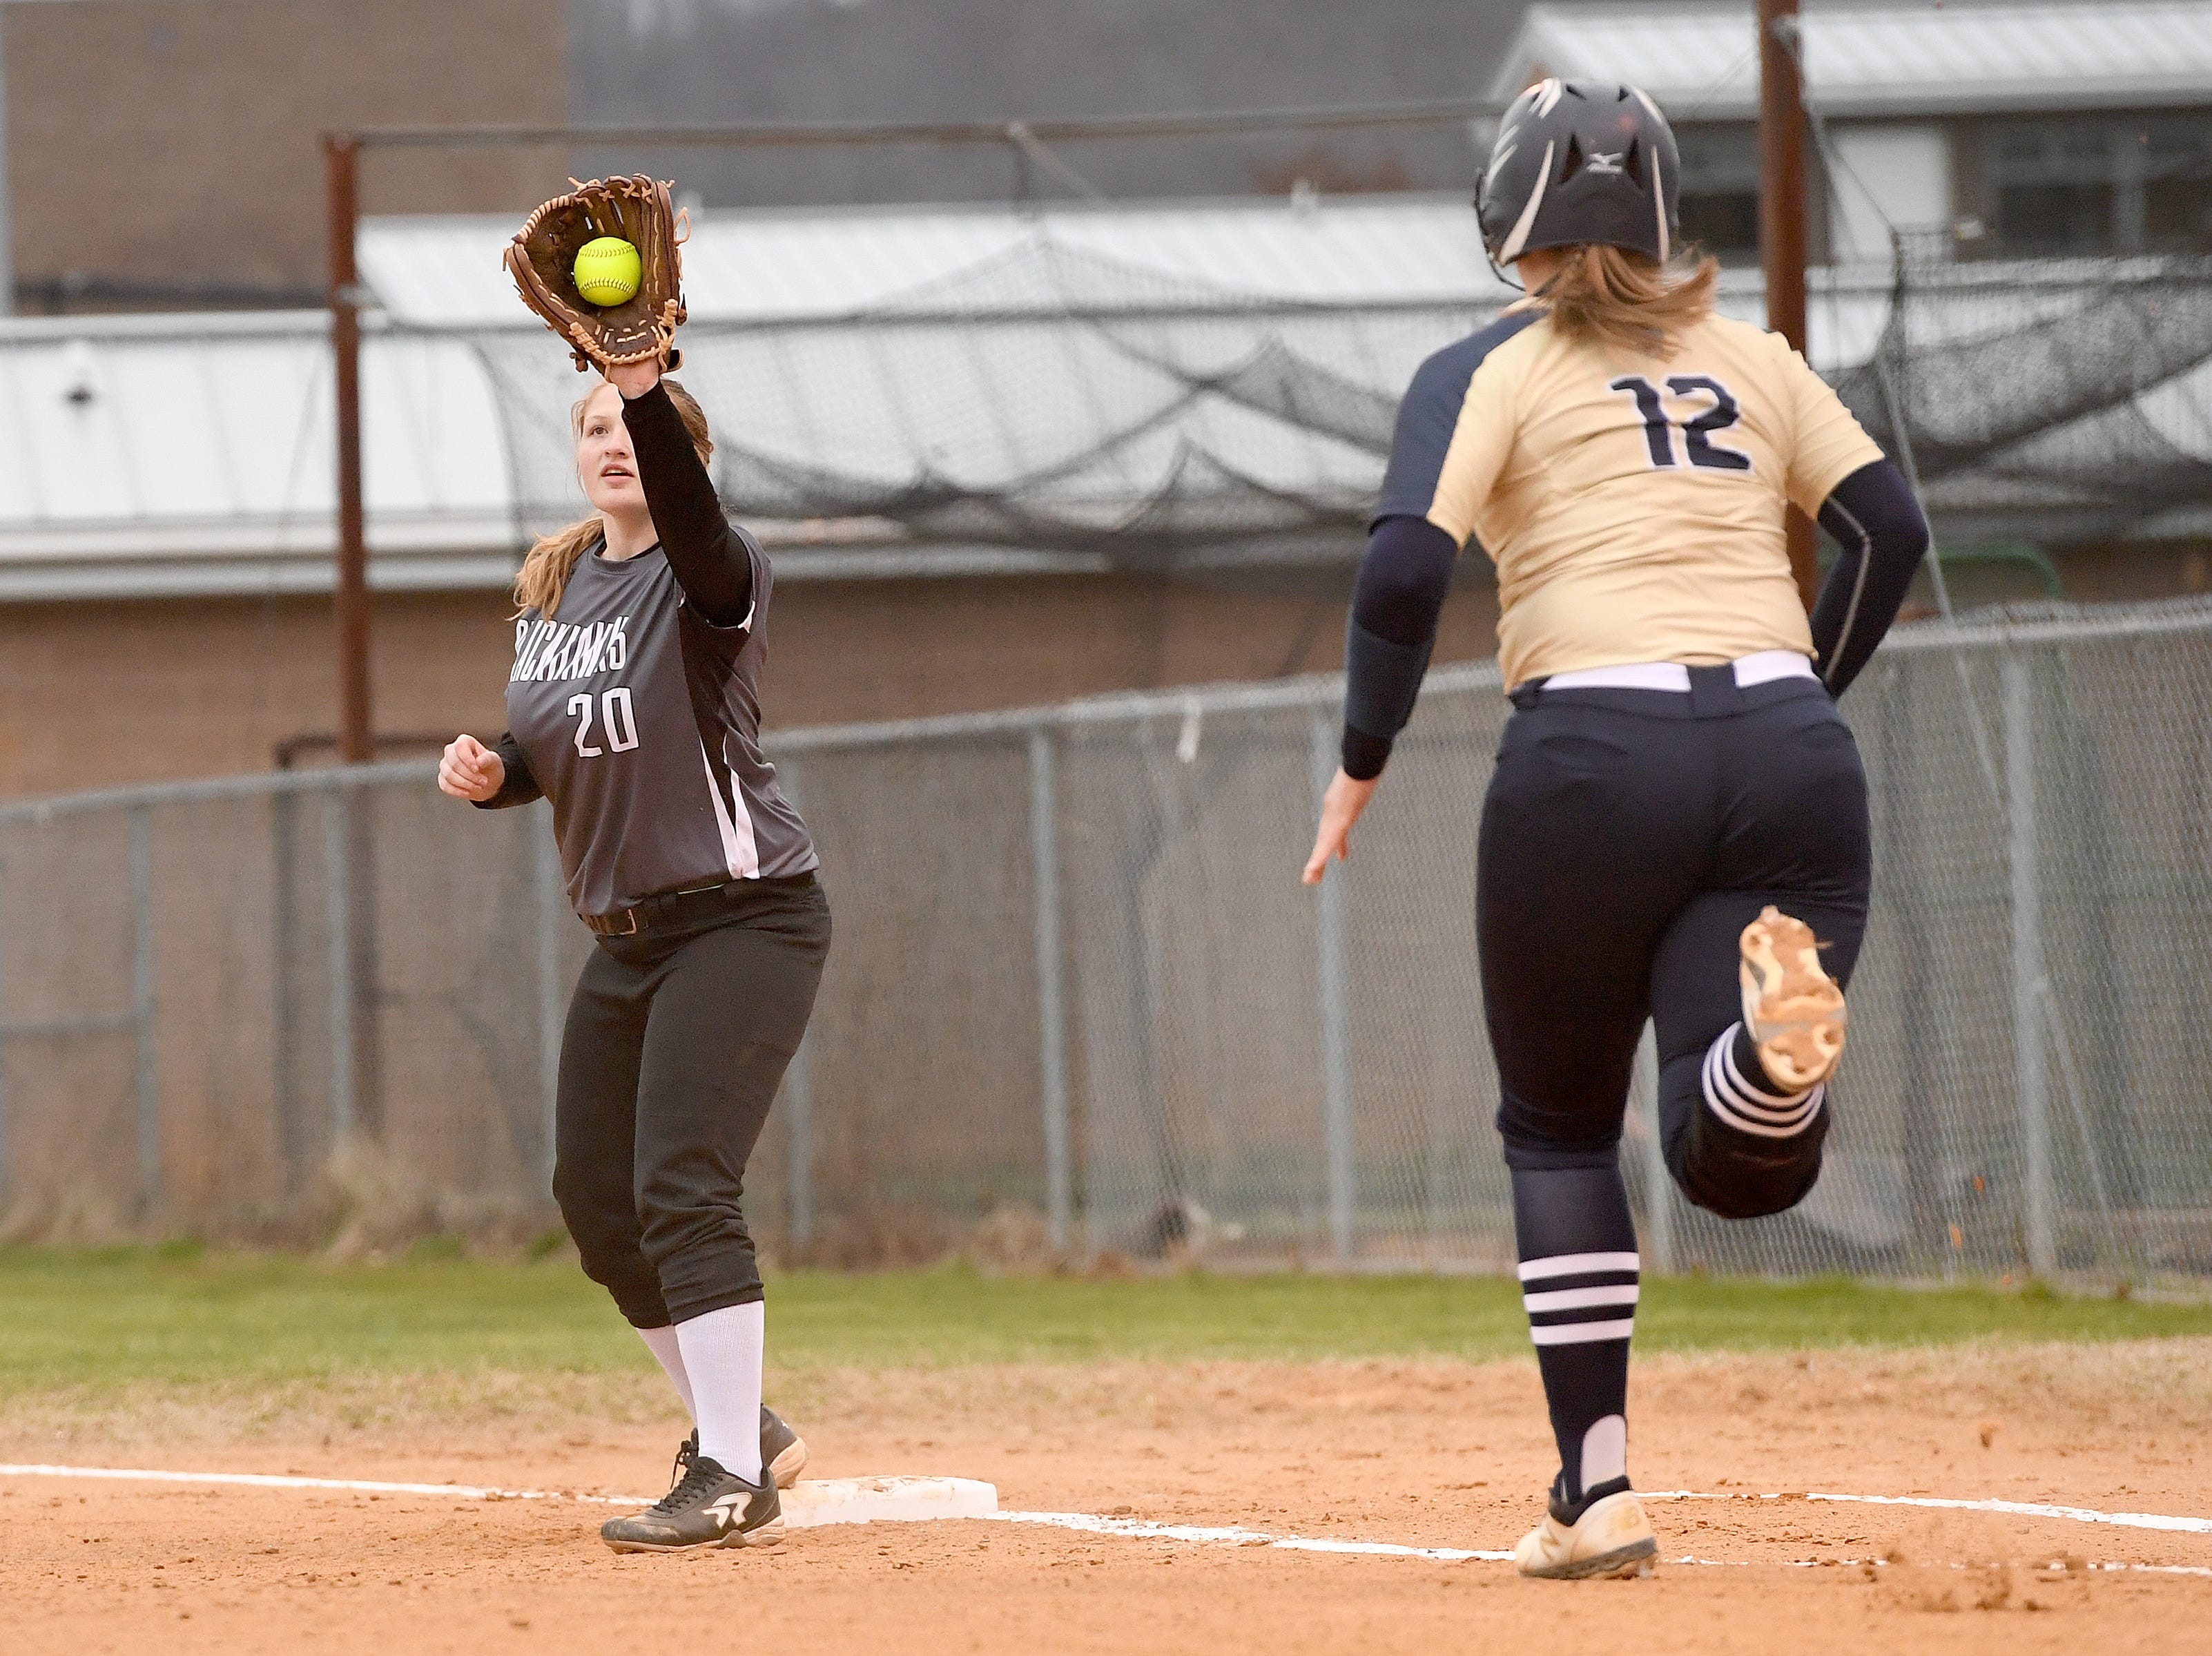 North Buncombe's Cassie Plemmons makes a play at first ahead of Roberson runner, Kristen Belknap, during their game at North Buncombe High School on March 7, 2019. North Buncombe defeated Roberson 3-1.